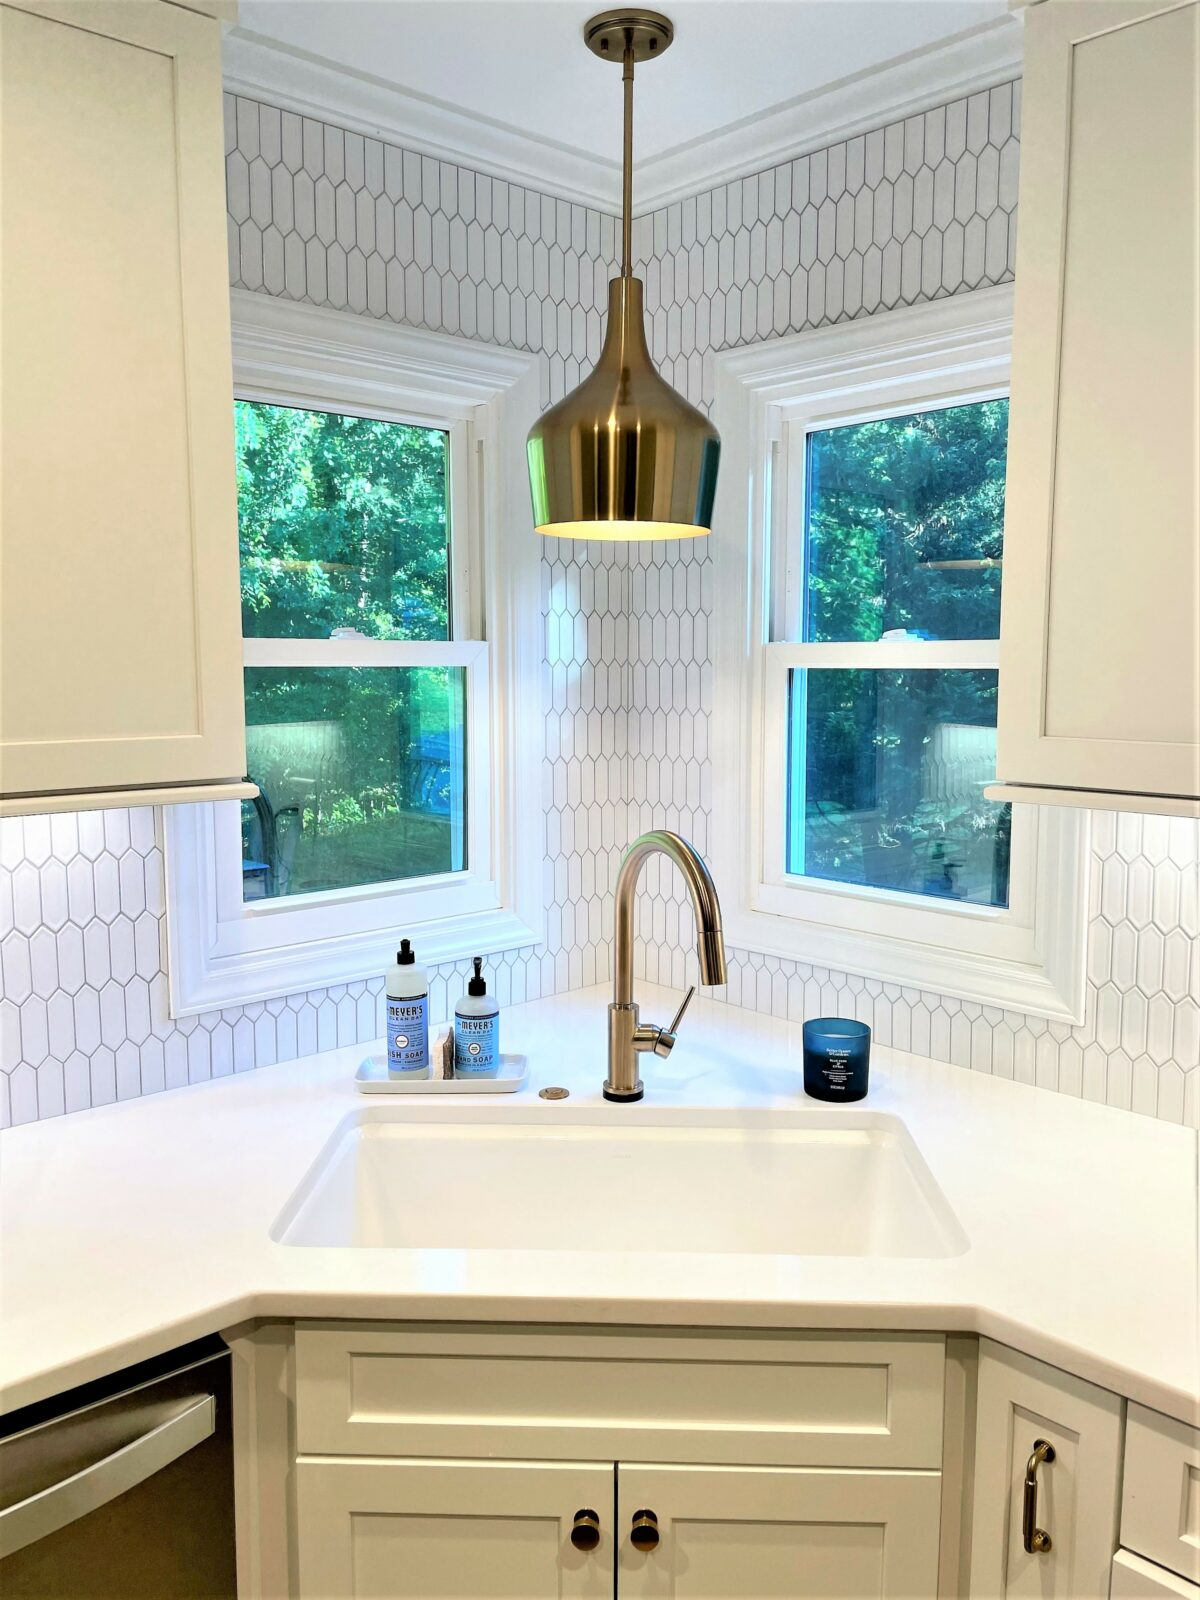 Remodeling My Home:  When Designer Becomes the Client